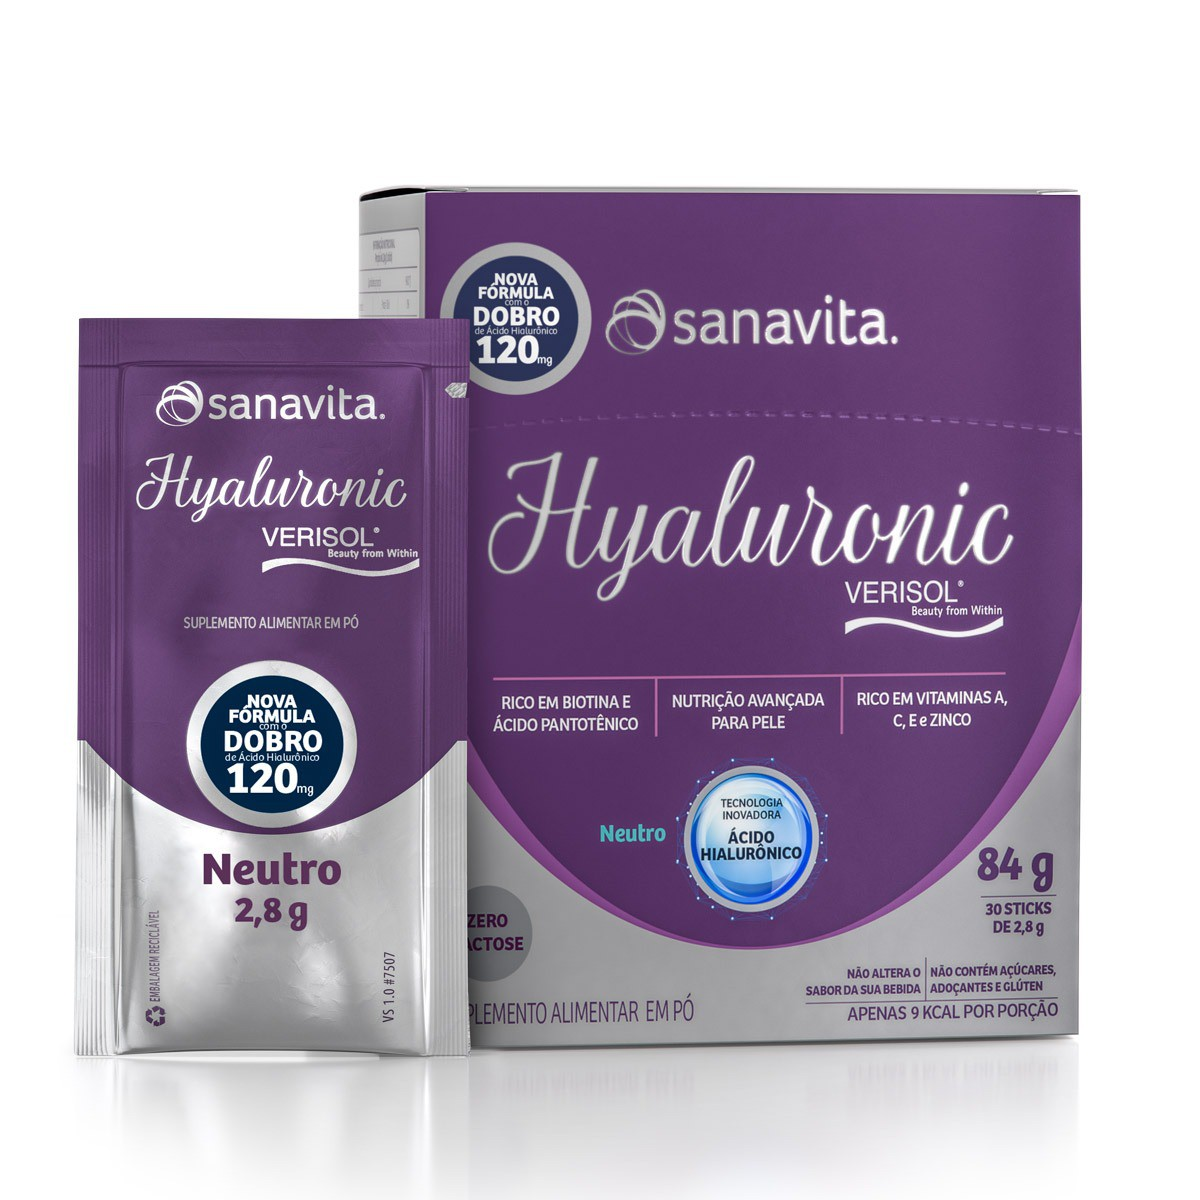 HYALURONIC PREMIUM NEUTRO VERISOL  Display 30 Sticks. Sanavita